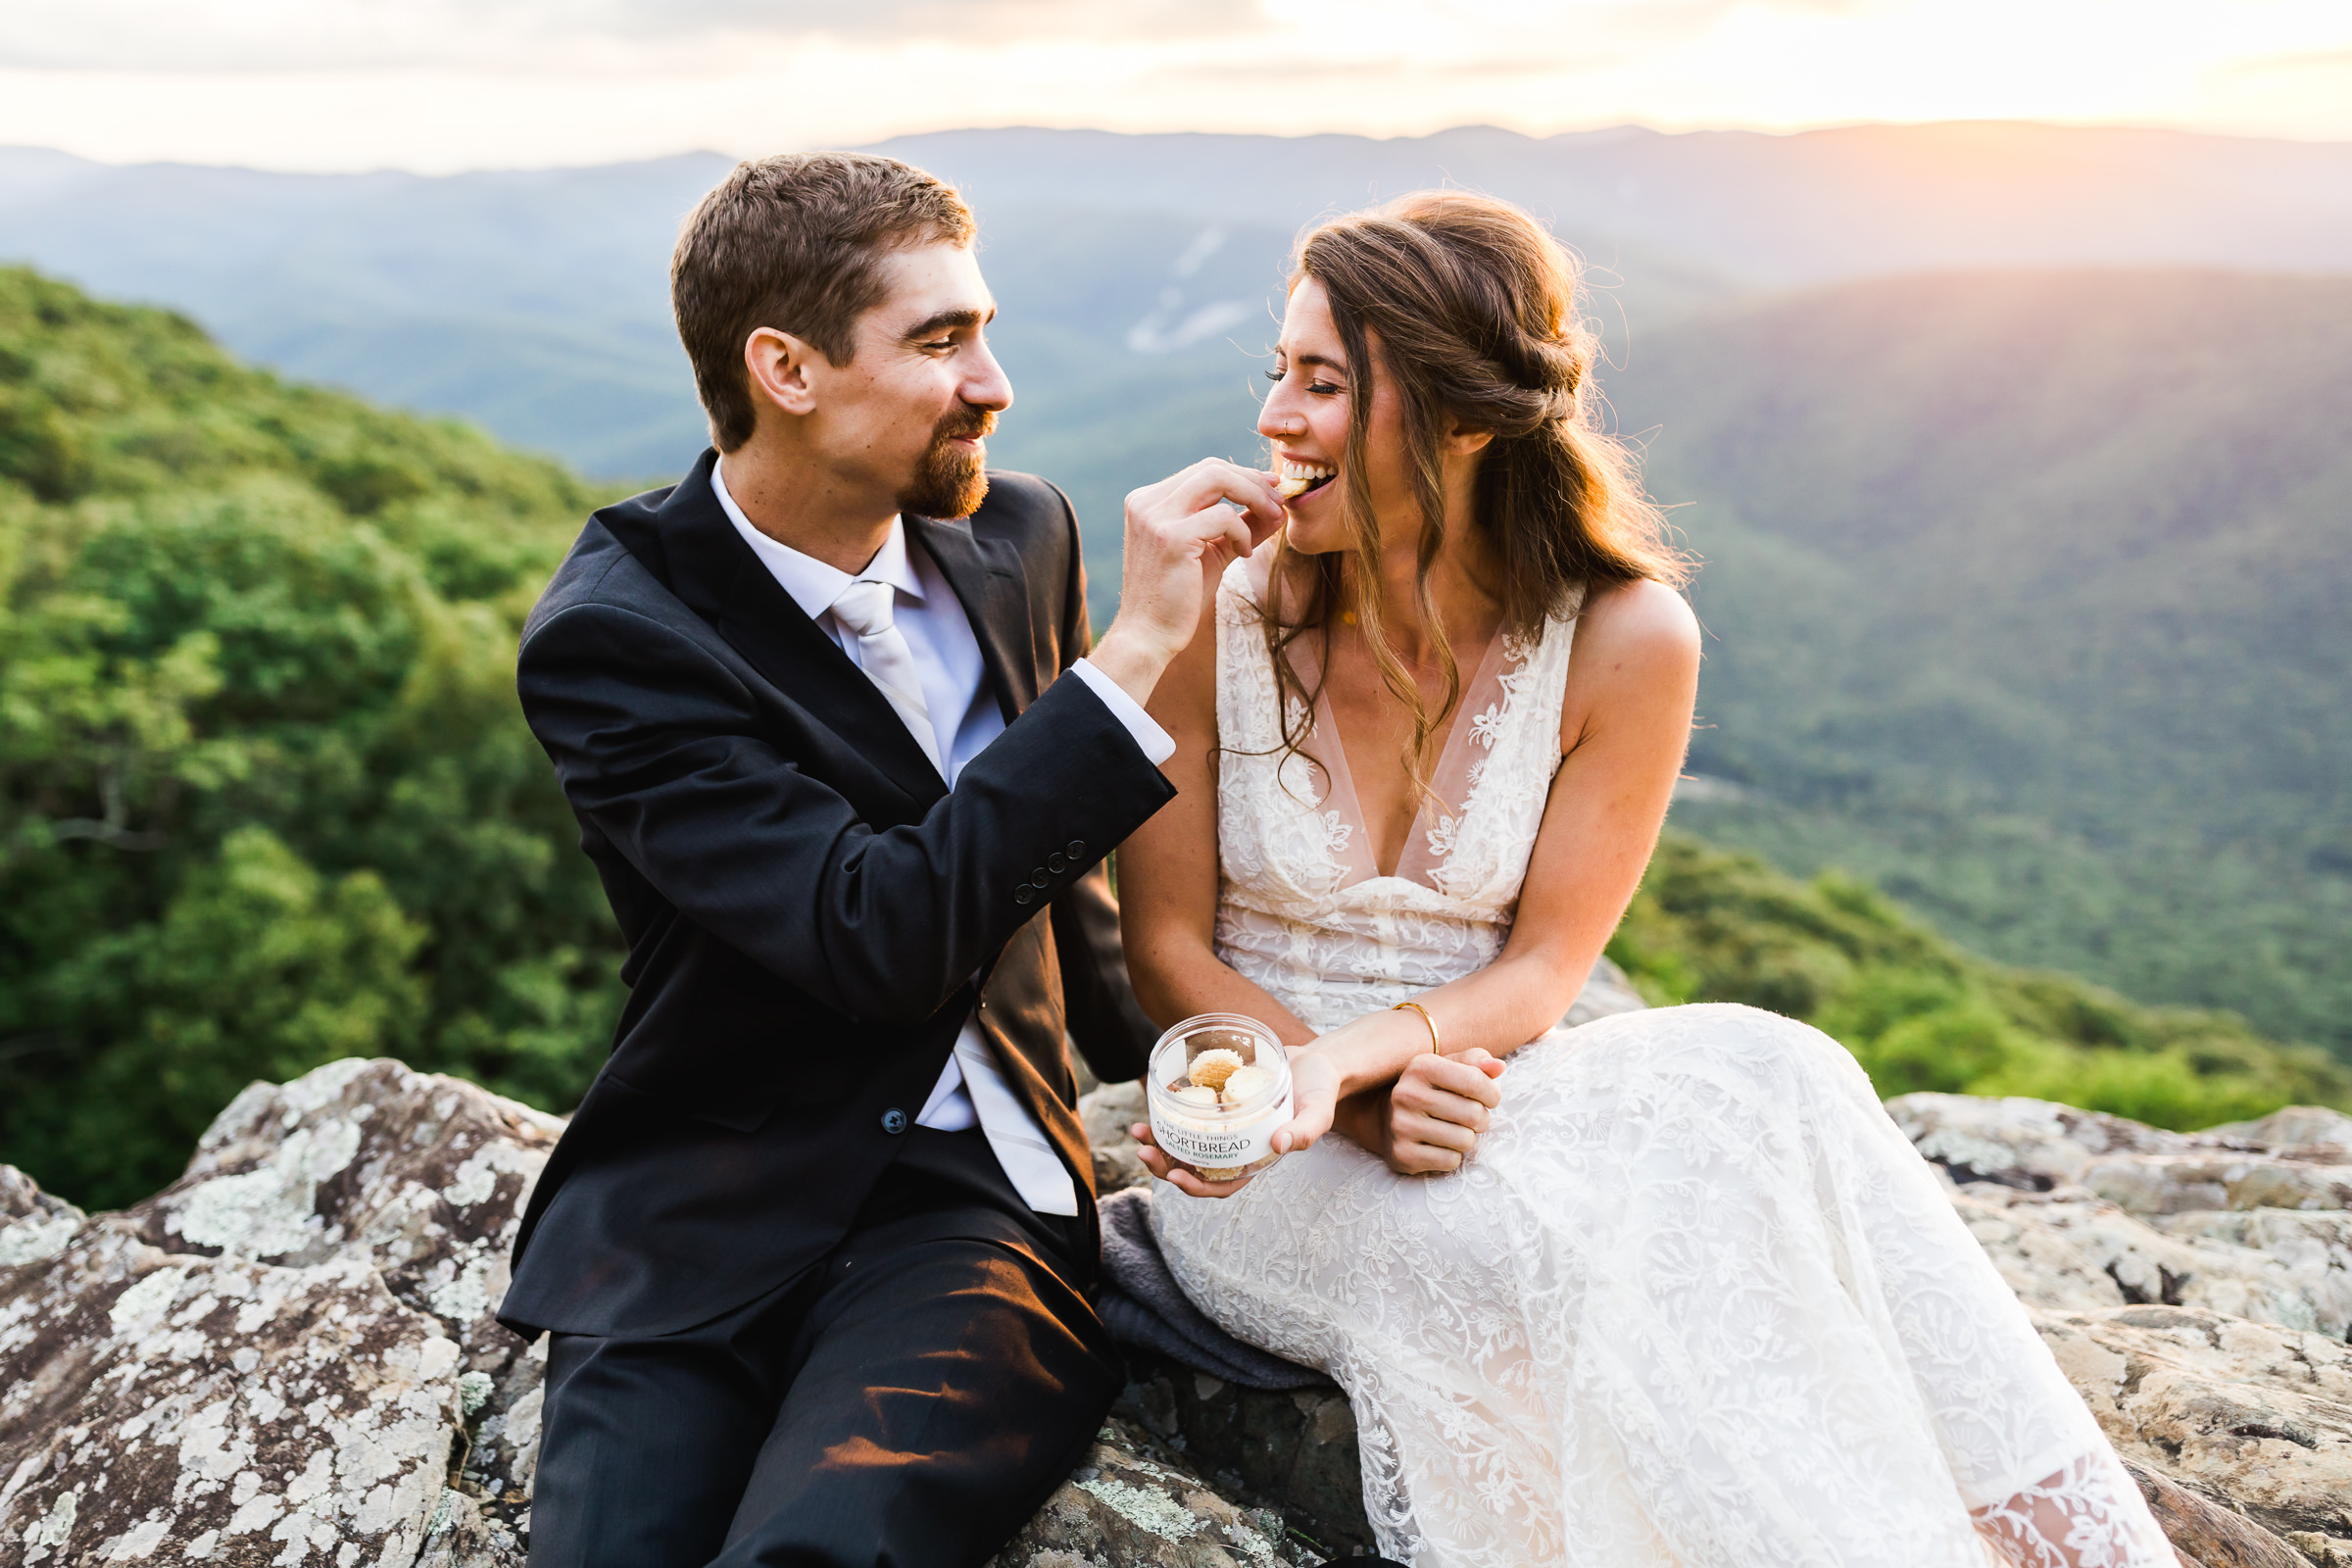 Groom feeding cookies to bride on mountaintop - photo by Xiaoqi Li Photography